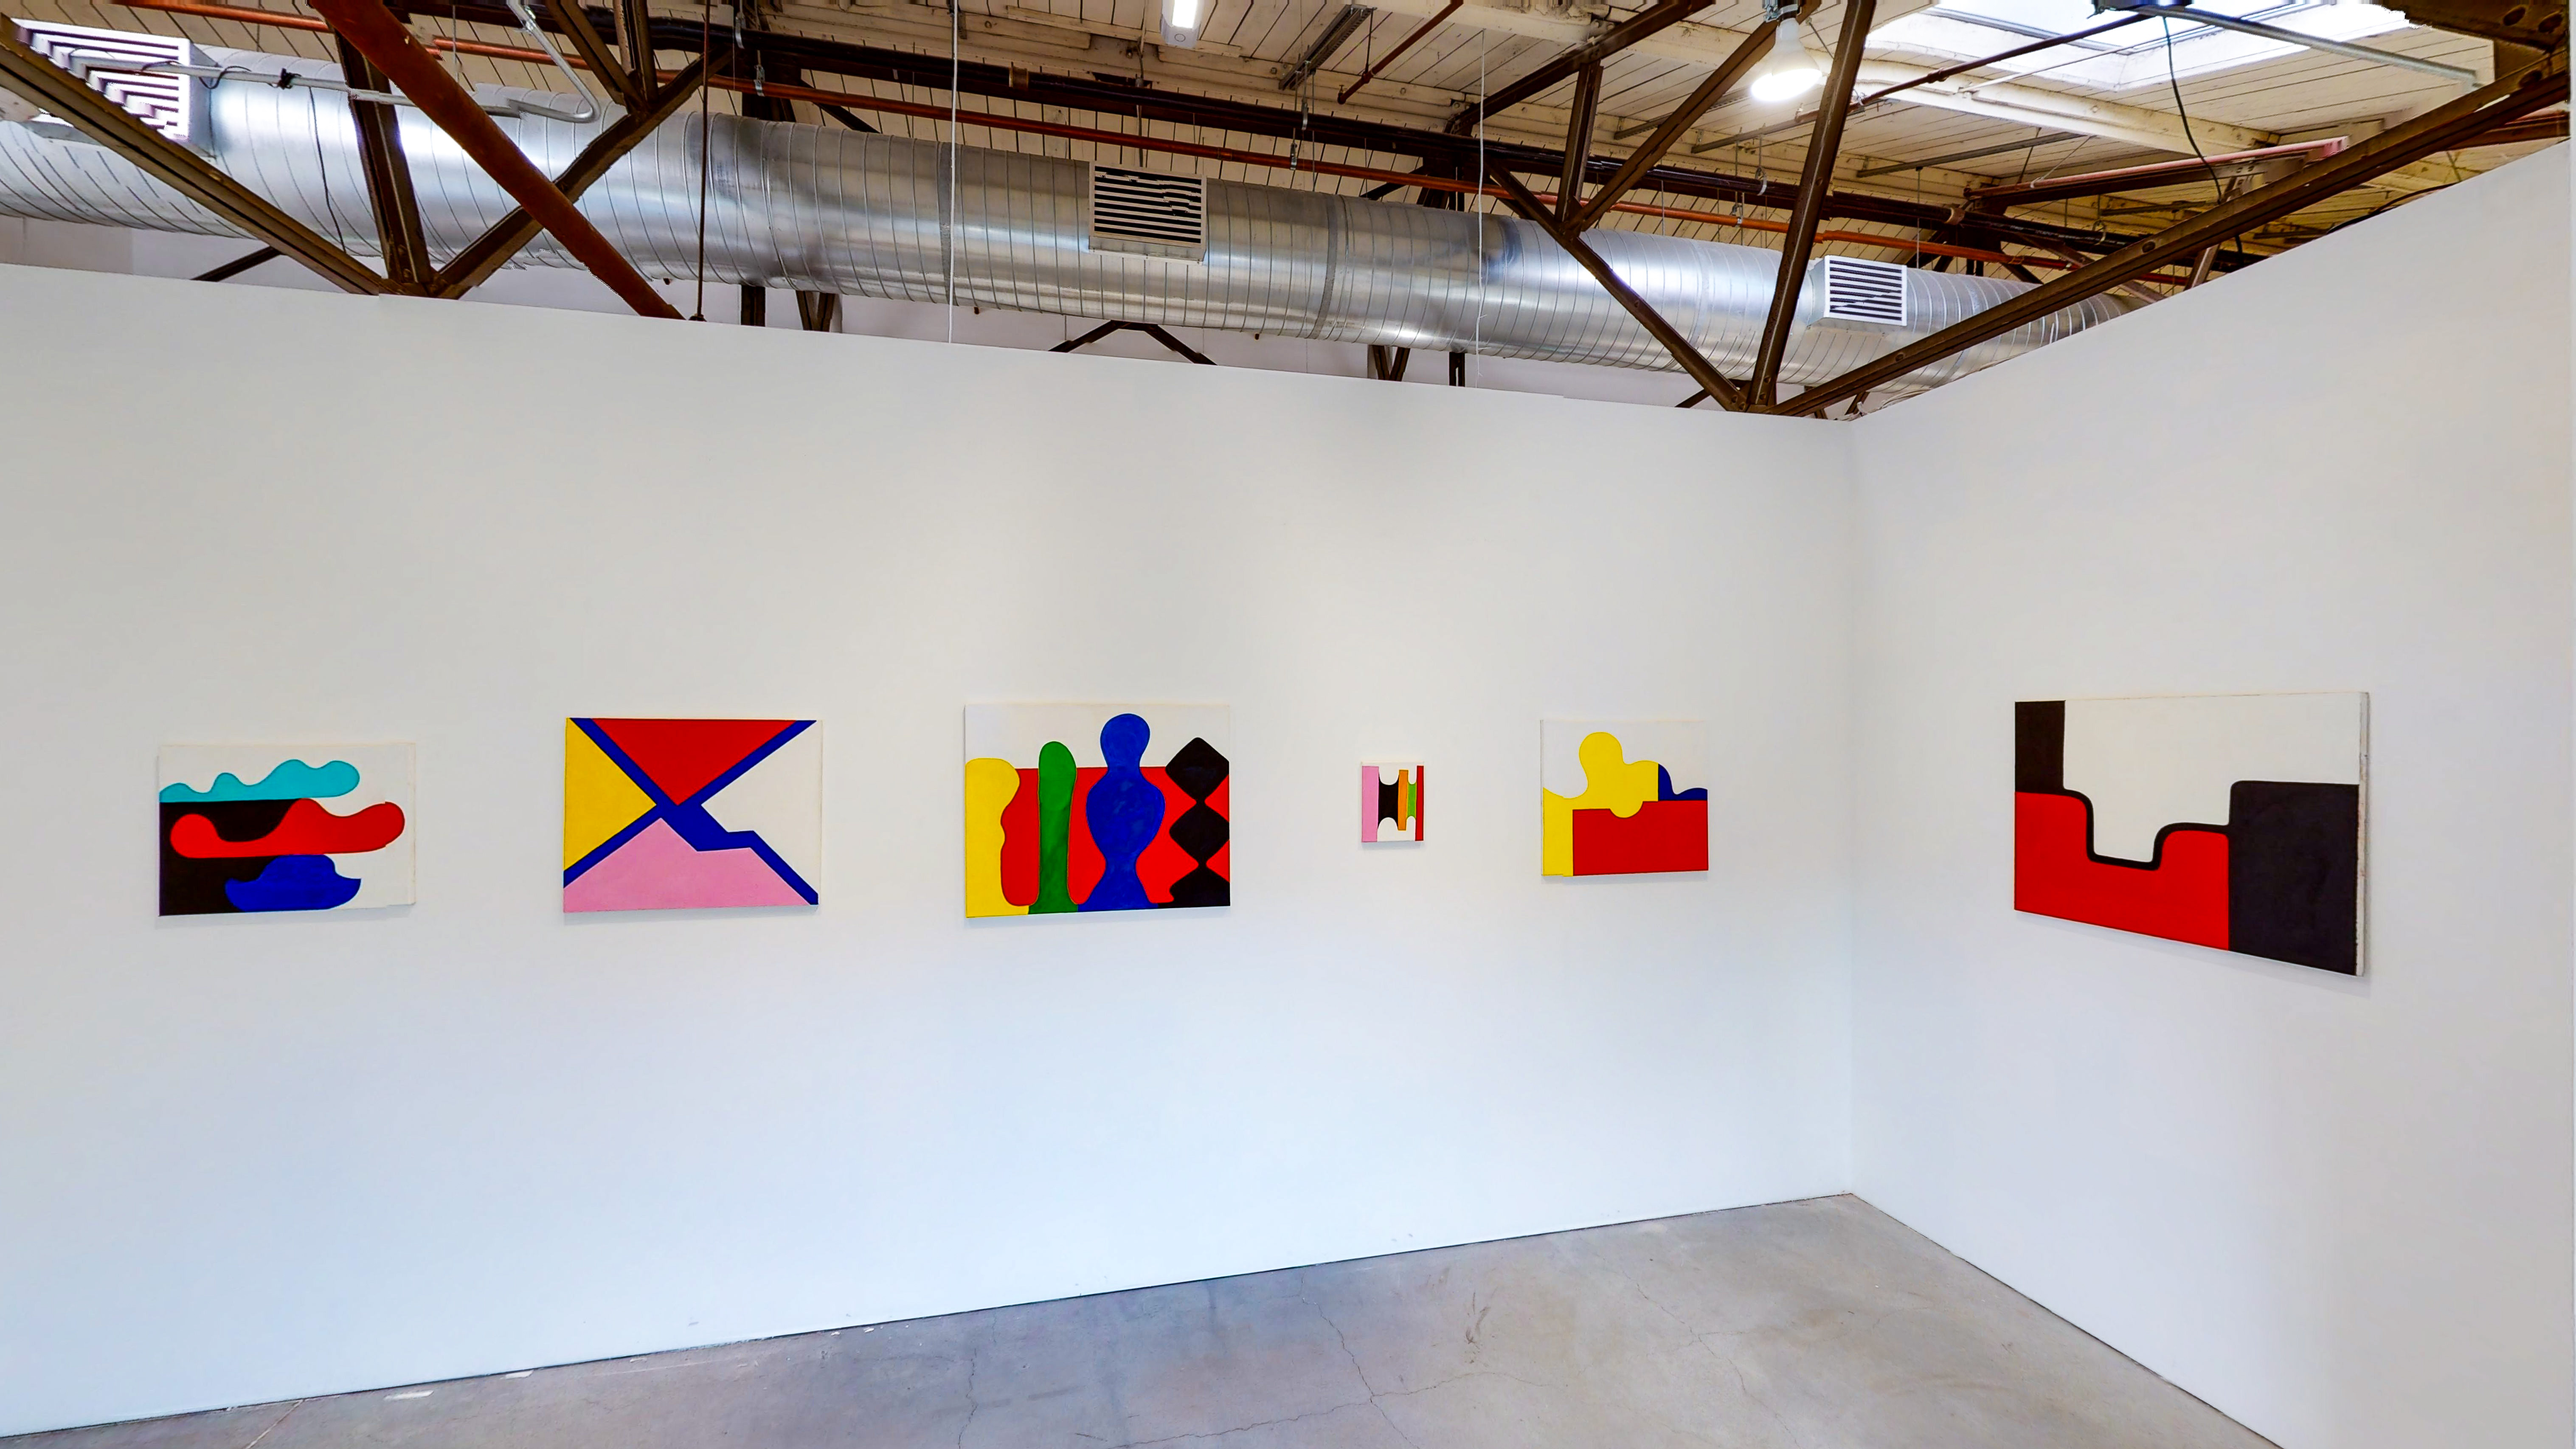 Interior of the Anglim/Trimble upstairs gallery showing various works by Andrew Masullo on display.